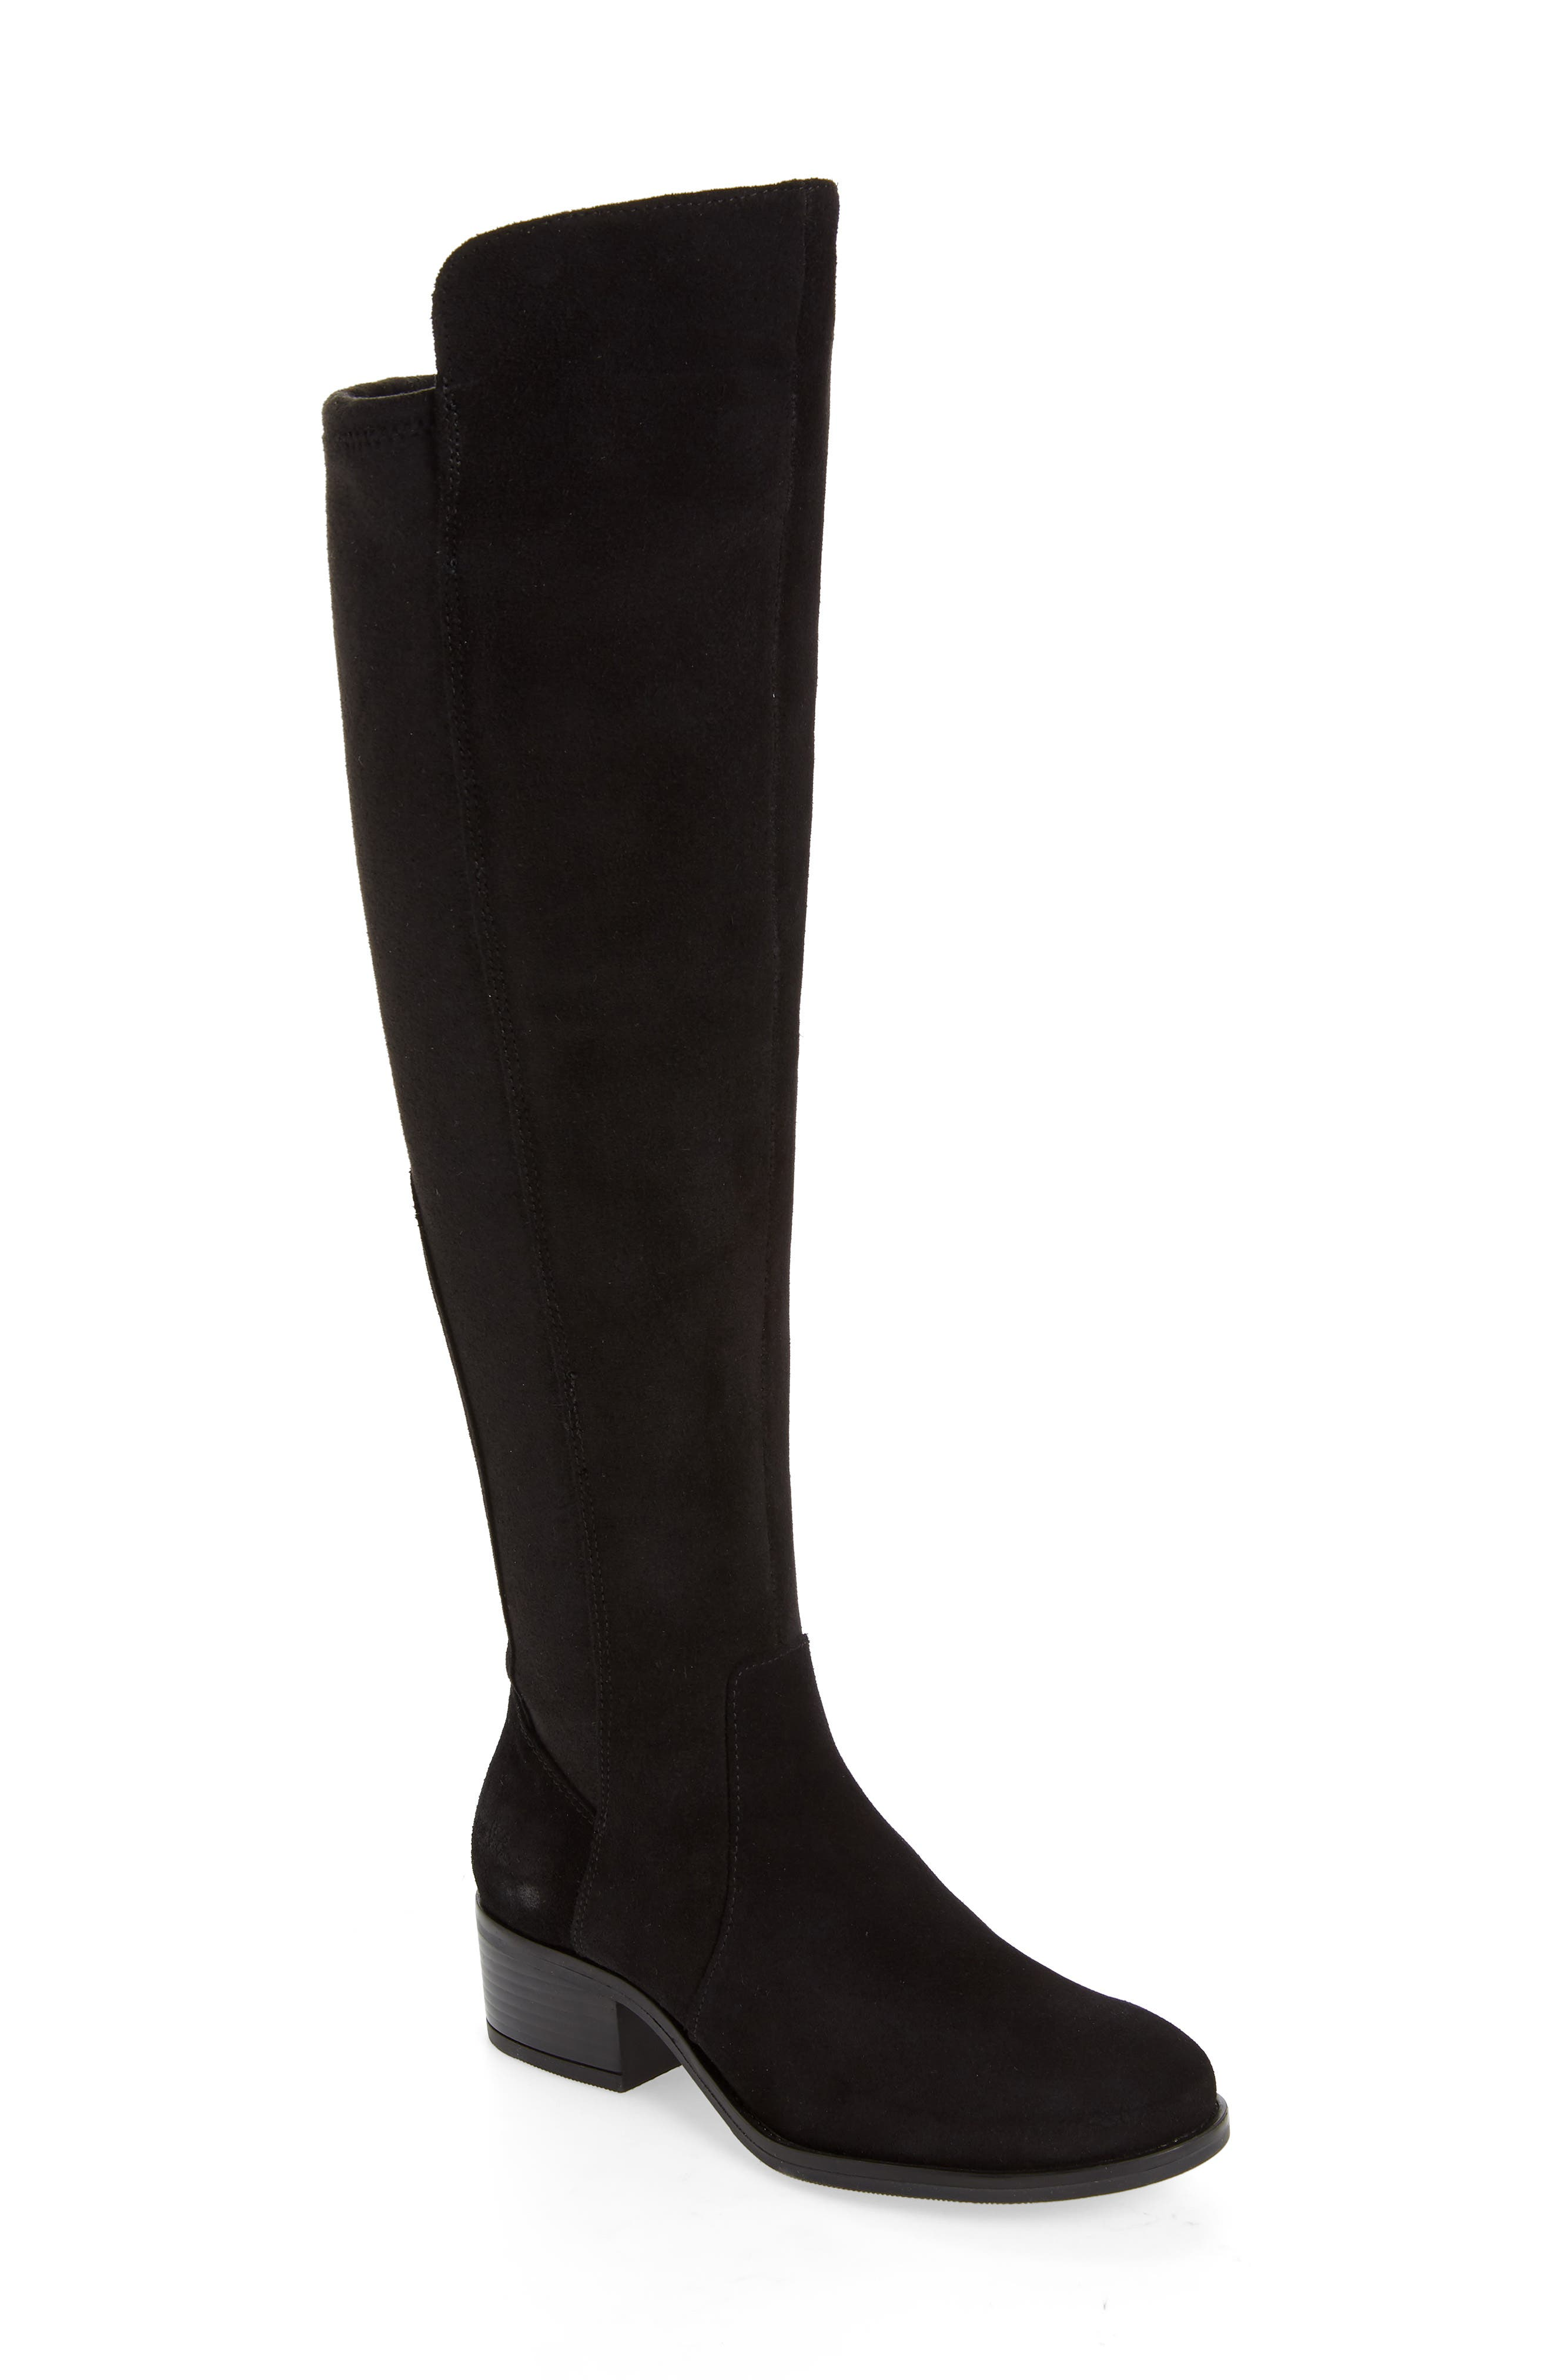 An Aquastop breathable, water-repellent membrane and moisture-wicking lining make this chic over-the-knee boot extra comfortable, whatever the forecast. Style Name: Bos. & Co. Jemmy Waterproof Over The Knee Boot (Women). Style Number: 6086131. Available in stores.